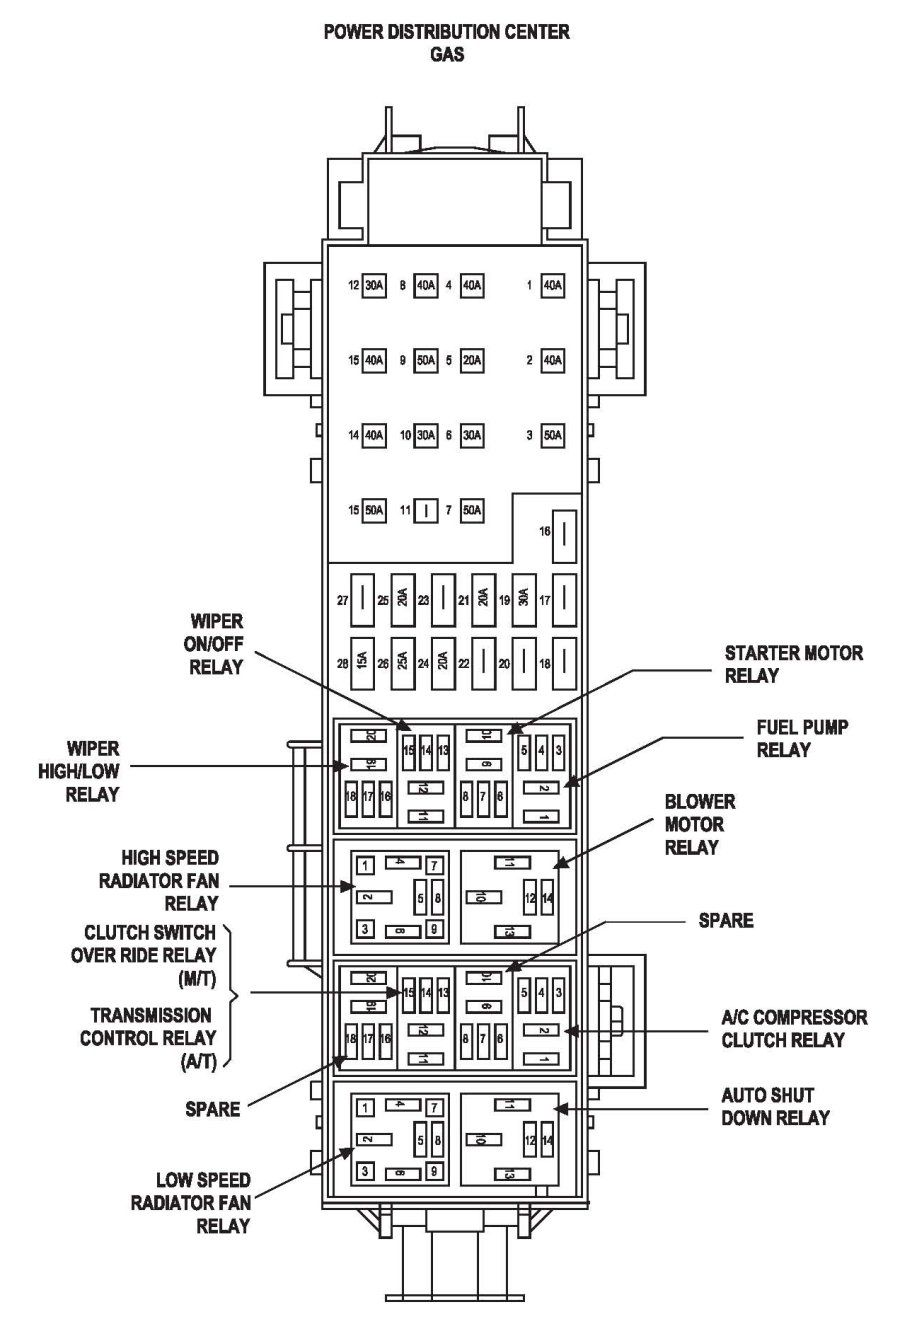 2007 Jeep Liberty Fuse Box Under Hood Expert Wiring Diagrams Chrysler Town And Country Diagram Image Details 2006